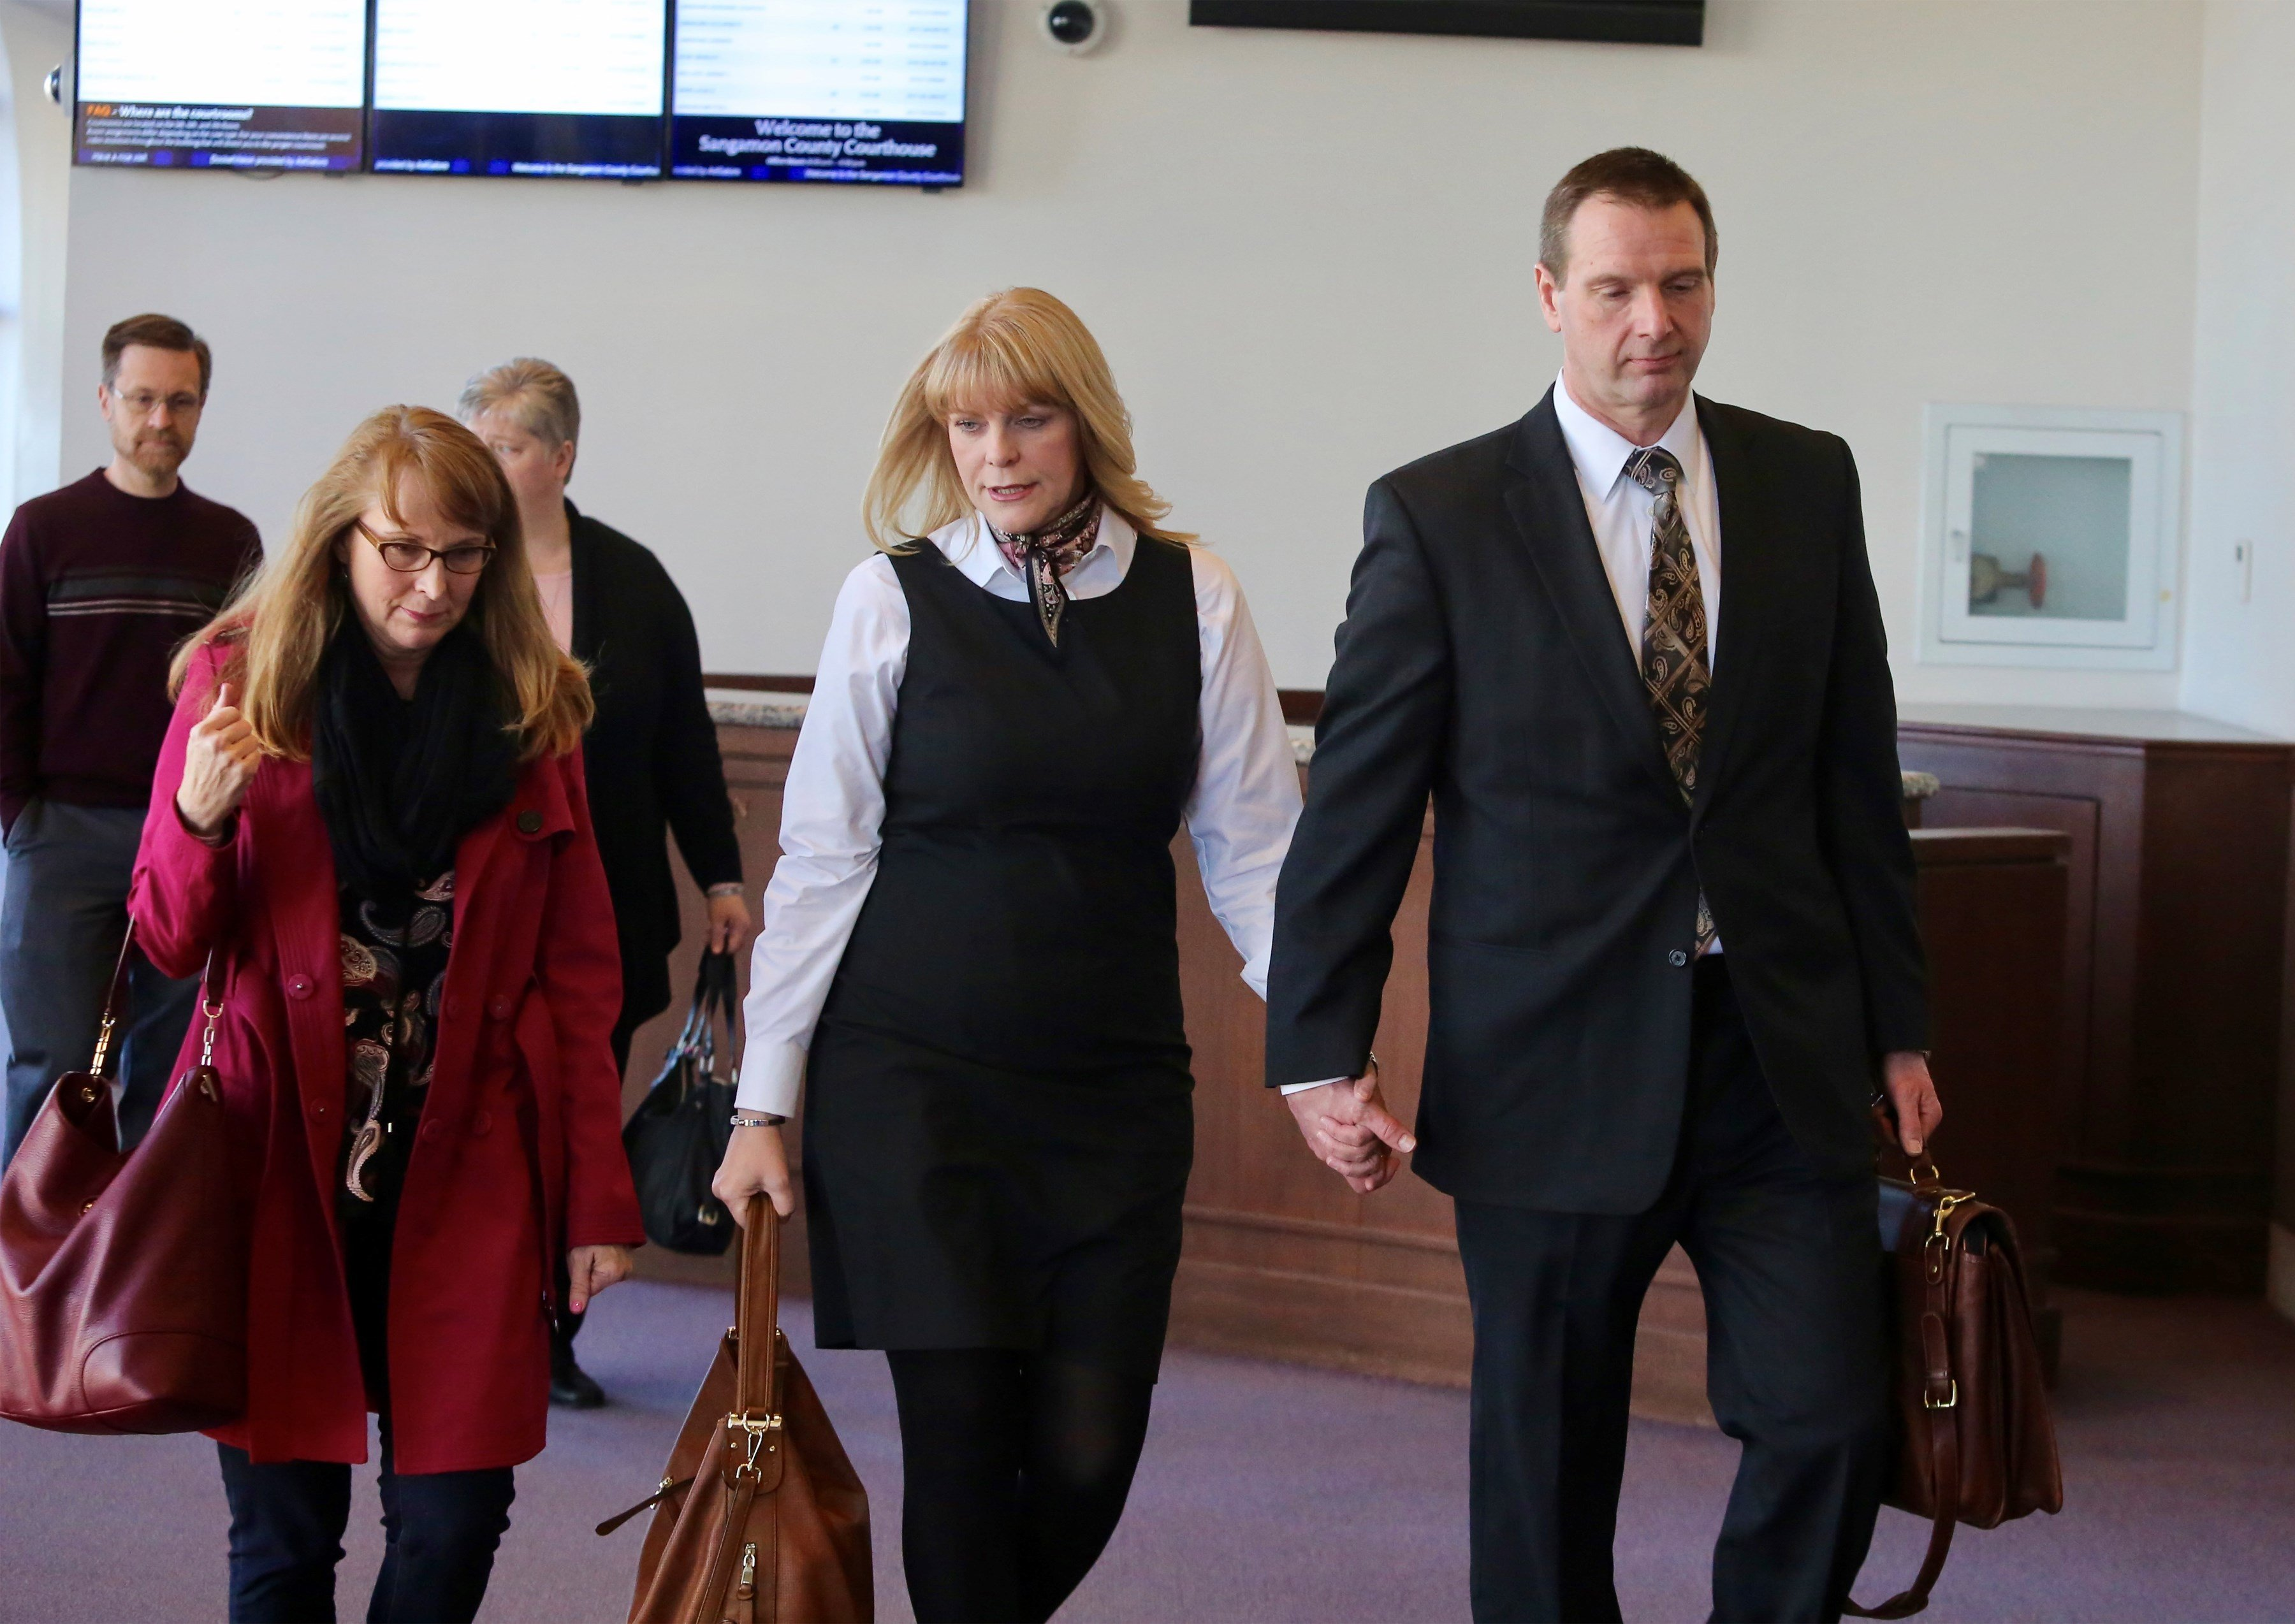 Curtis and Christine Lovelace arrive to court.